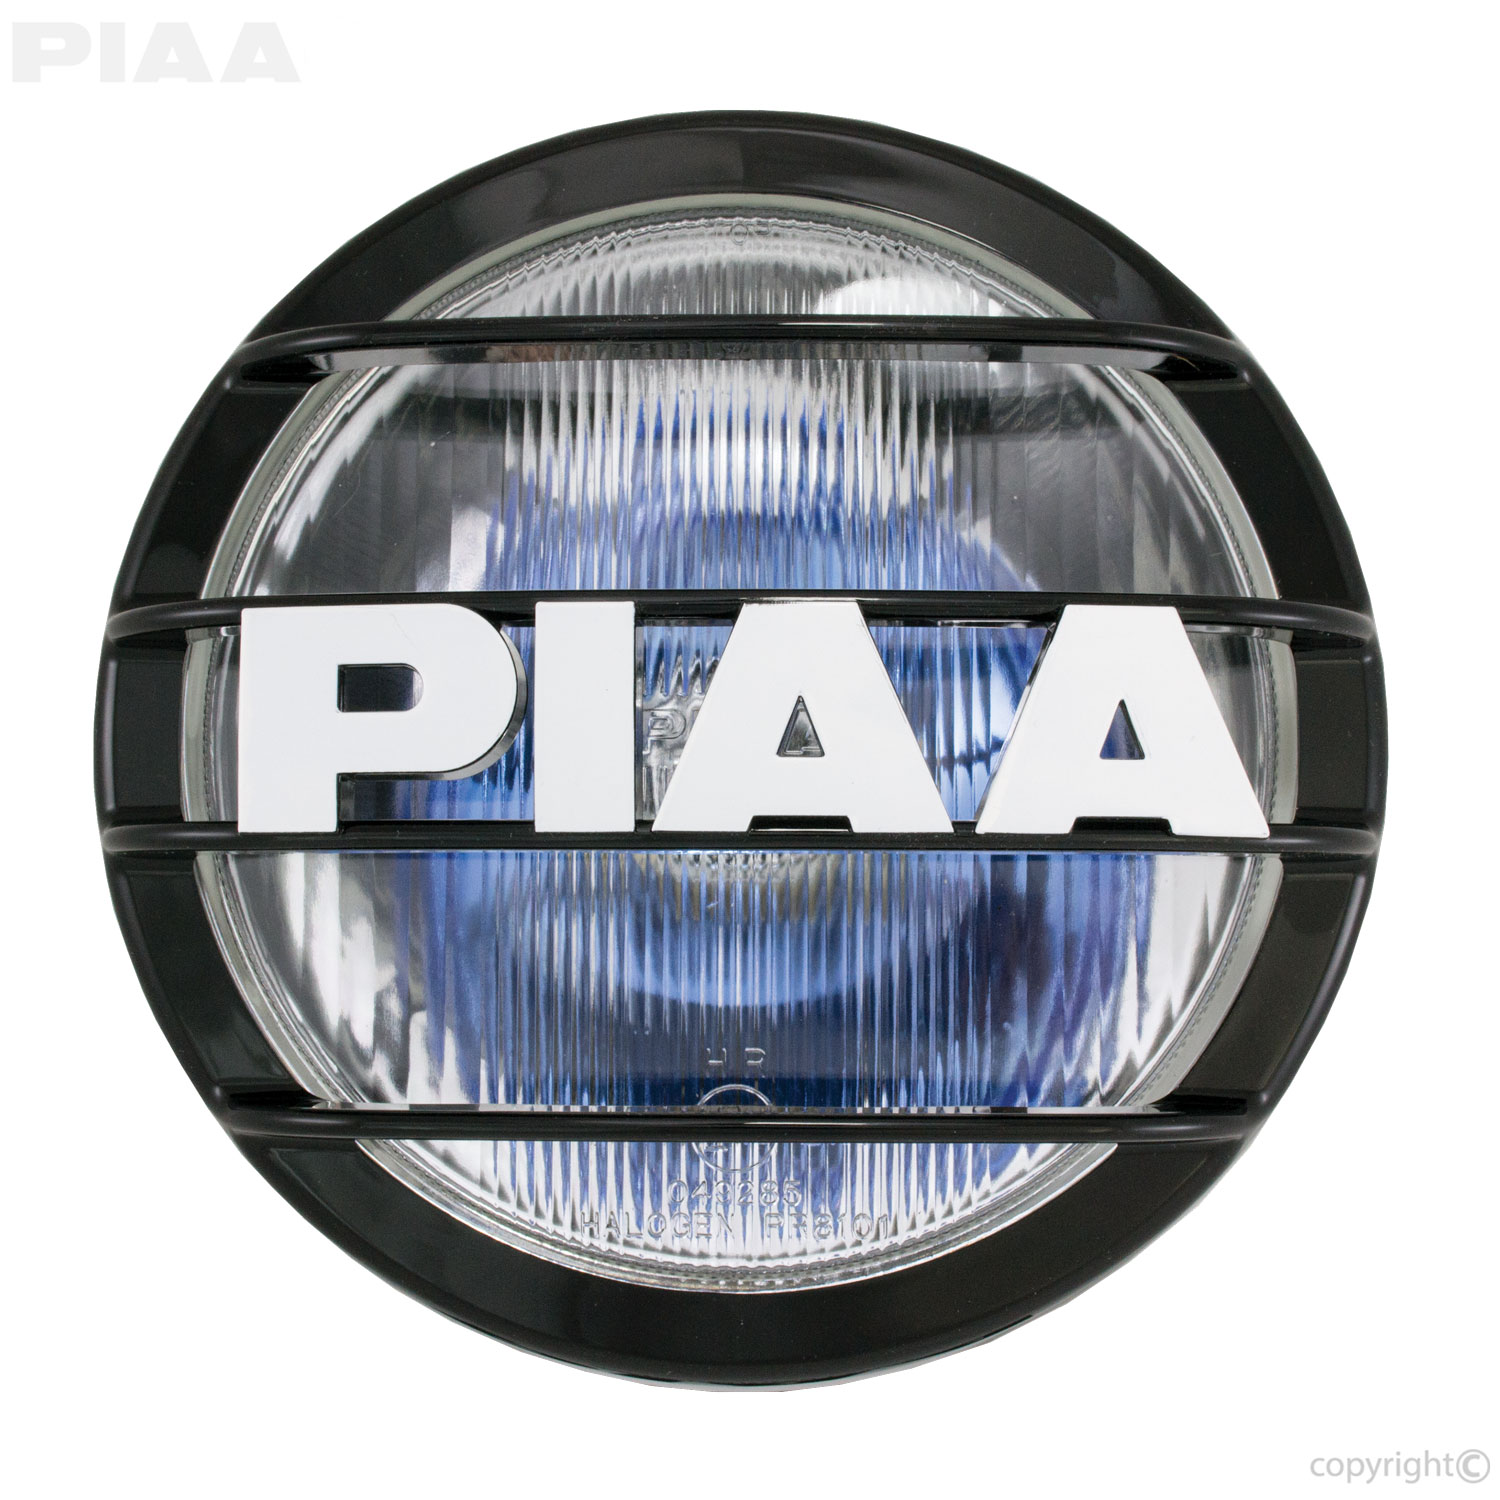 Piaa 580 Wiring Diagram Just Another Blog Harness Driving Xtreme White Plus Halogen Lamp Kit 05862 Rh Com Can Light